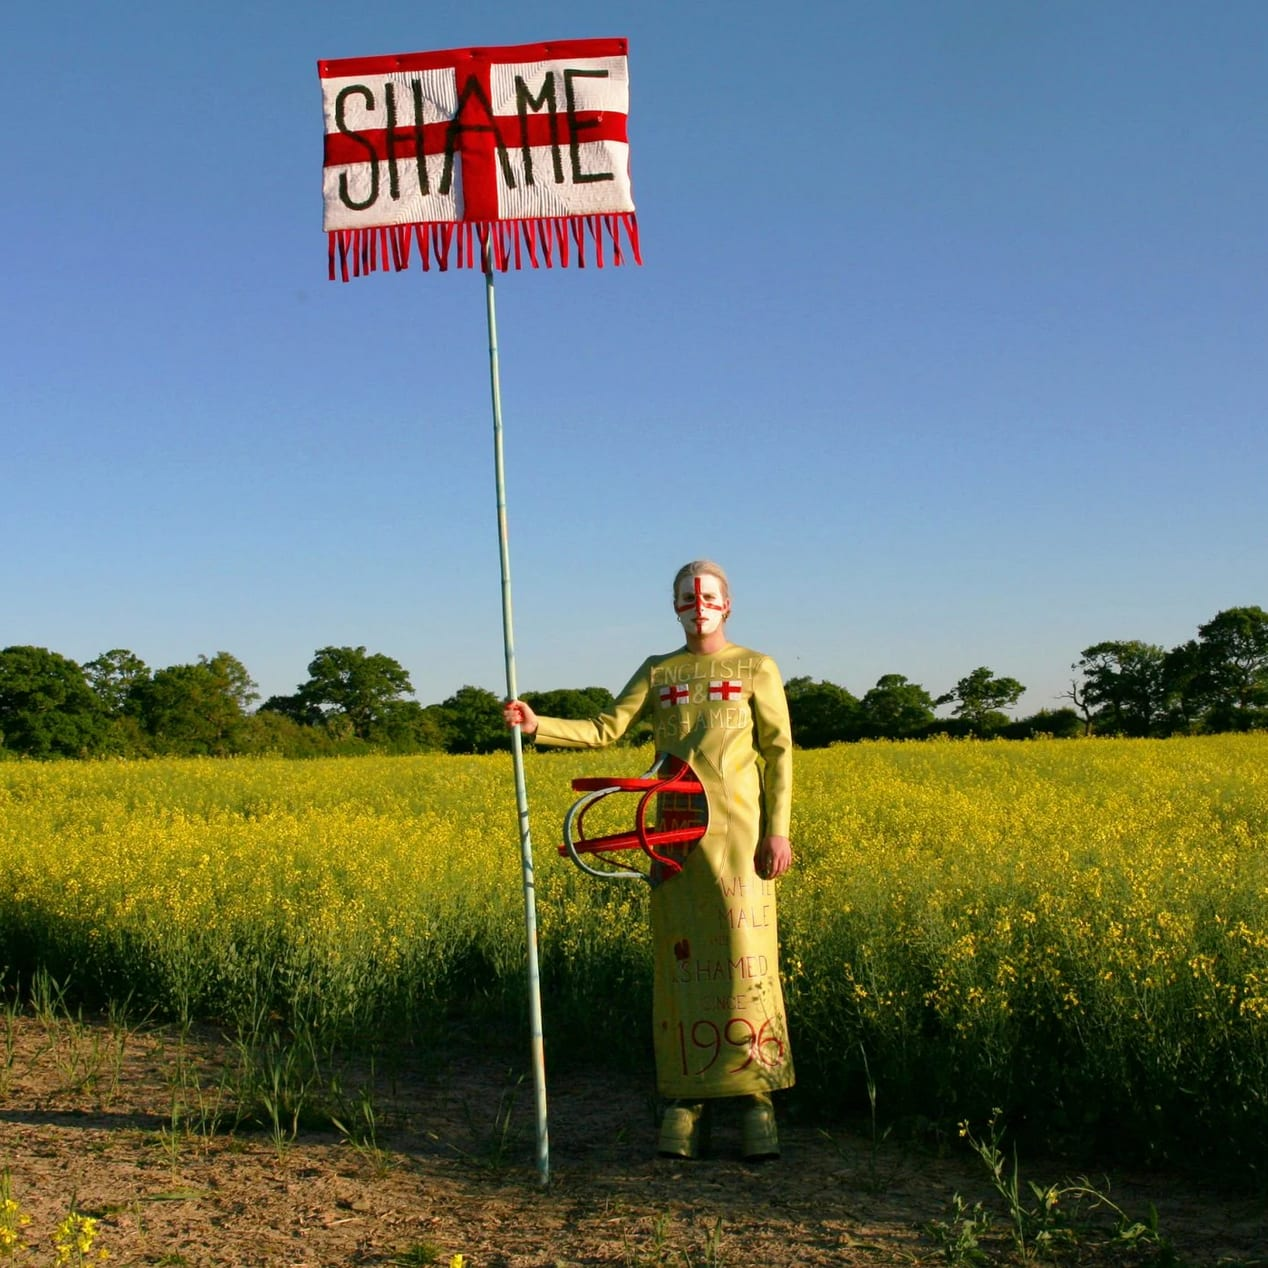 A person stood in a field holding an English flag